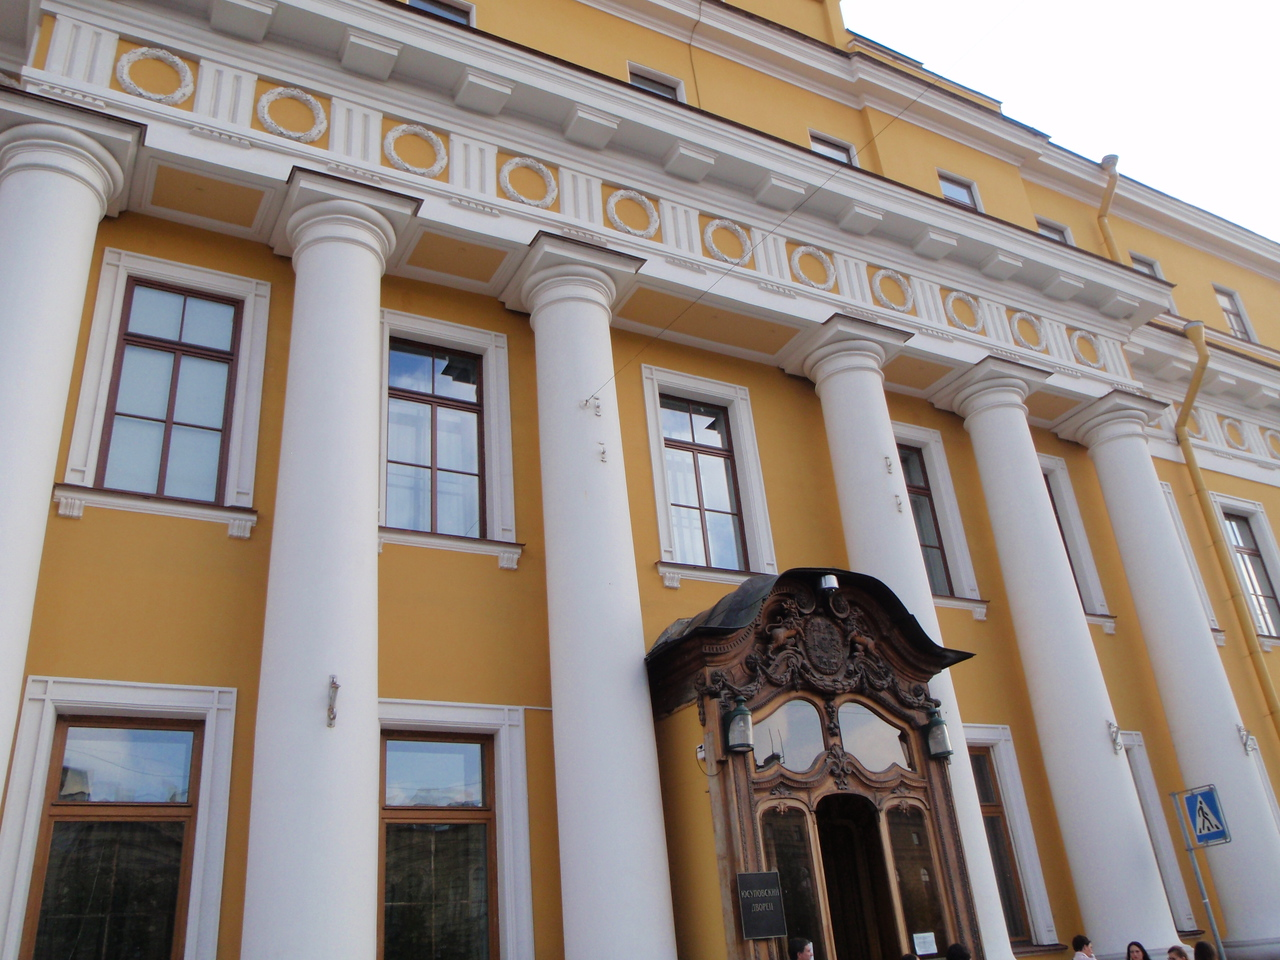 A palace with lovely interriors AND the site of Grigori Rasputin's murder which precipitated the collapse of the Russian Empire.